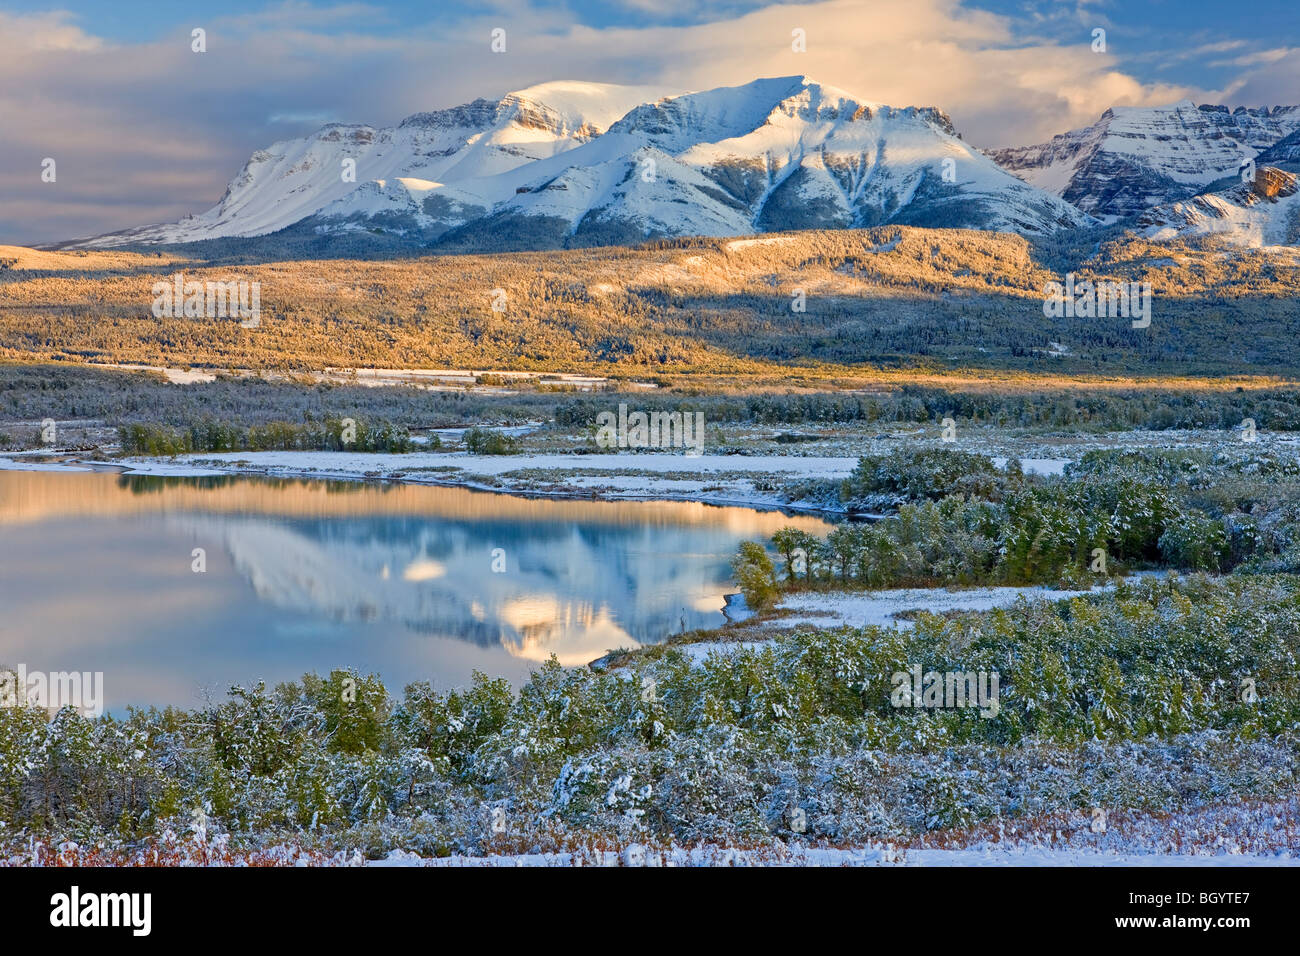 Lower Waterton Lake and the mountains of Waterton Lakes National Park (a UNESCO World Heritage Site & Biosphere - Stock Image